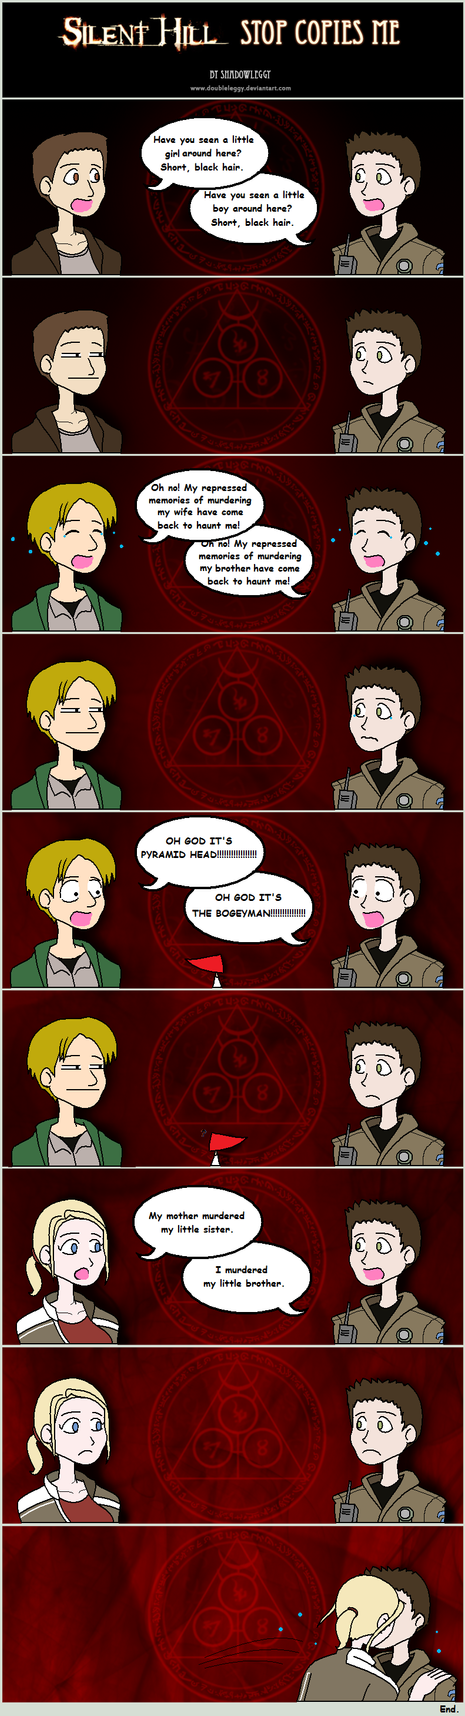 Talking Box - Page 12 Silent_Hill__Stop_Copies_Me_by_DoubleLeggy